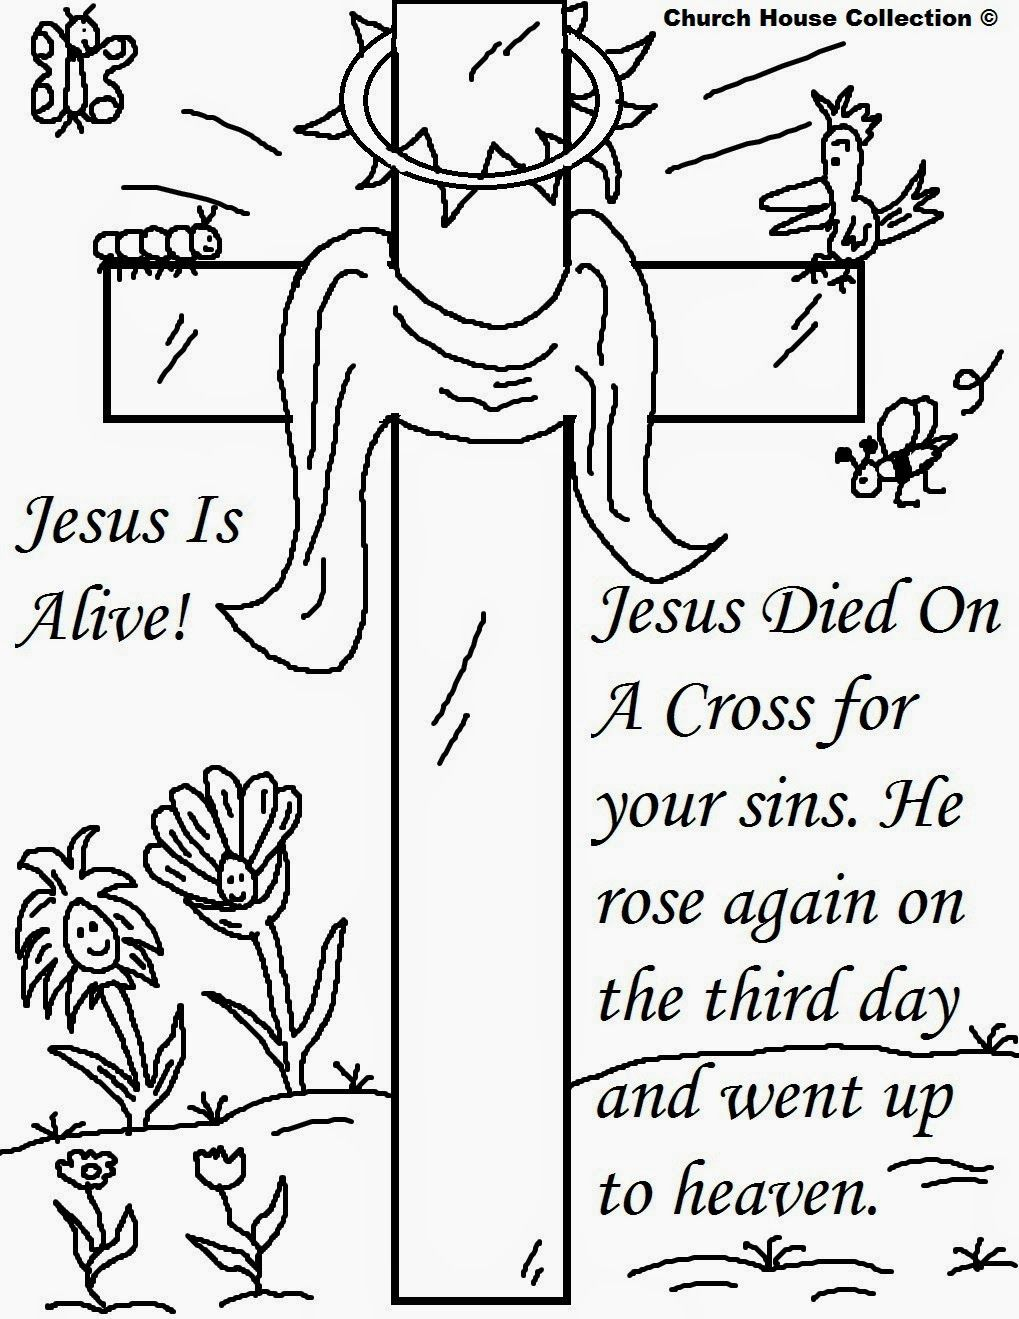 Church House Collection Blog  Easter Jesus Resurrection Coloring